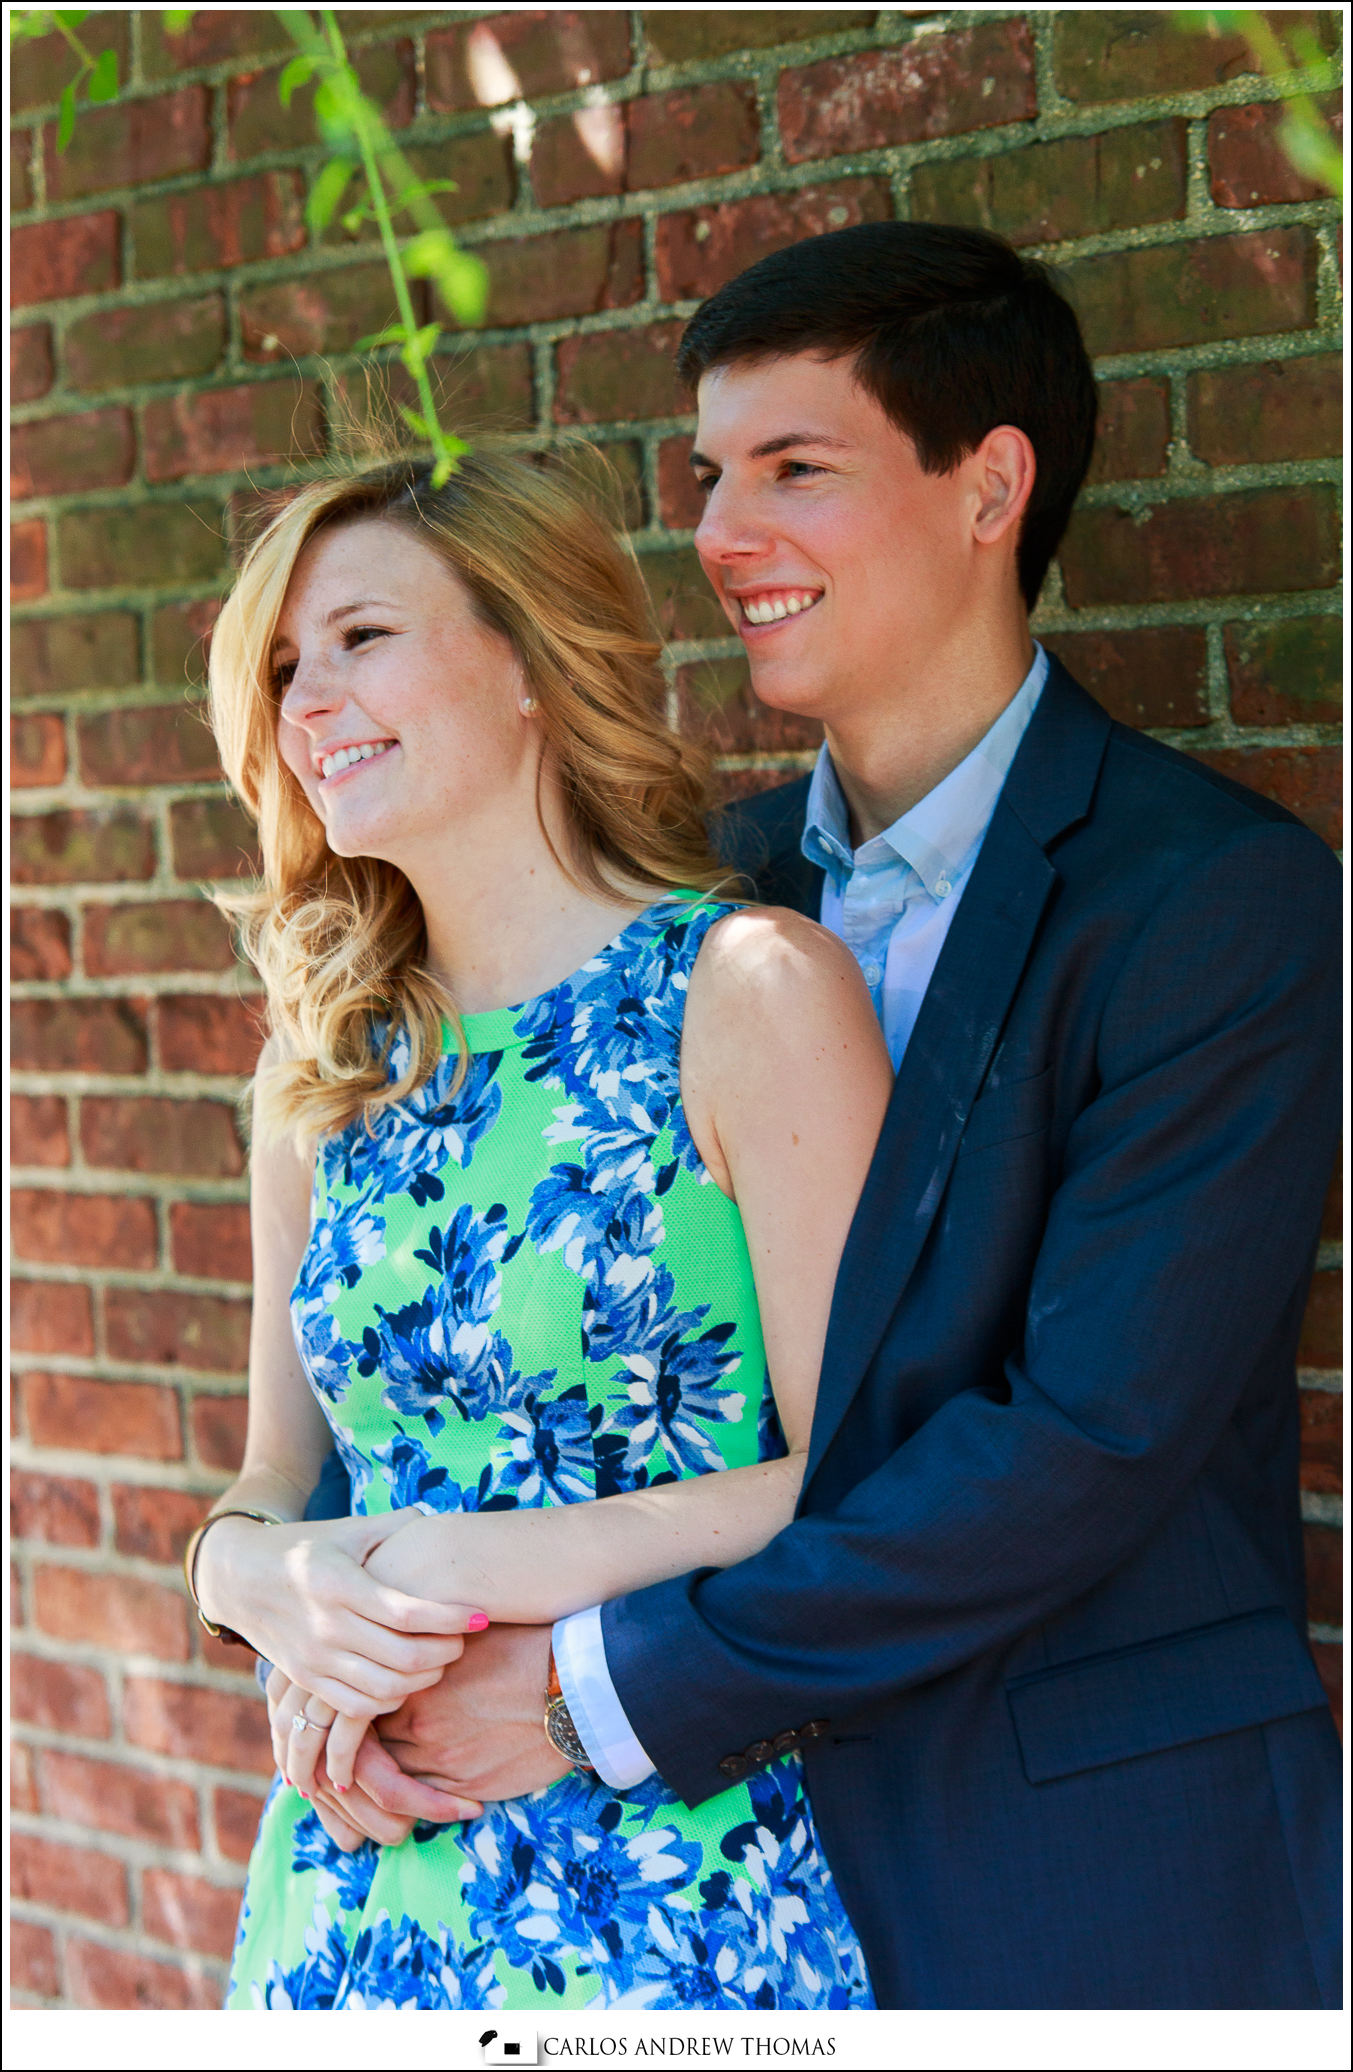 engagement session,central park, carlos andrew thomas,wedding photographer